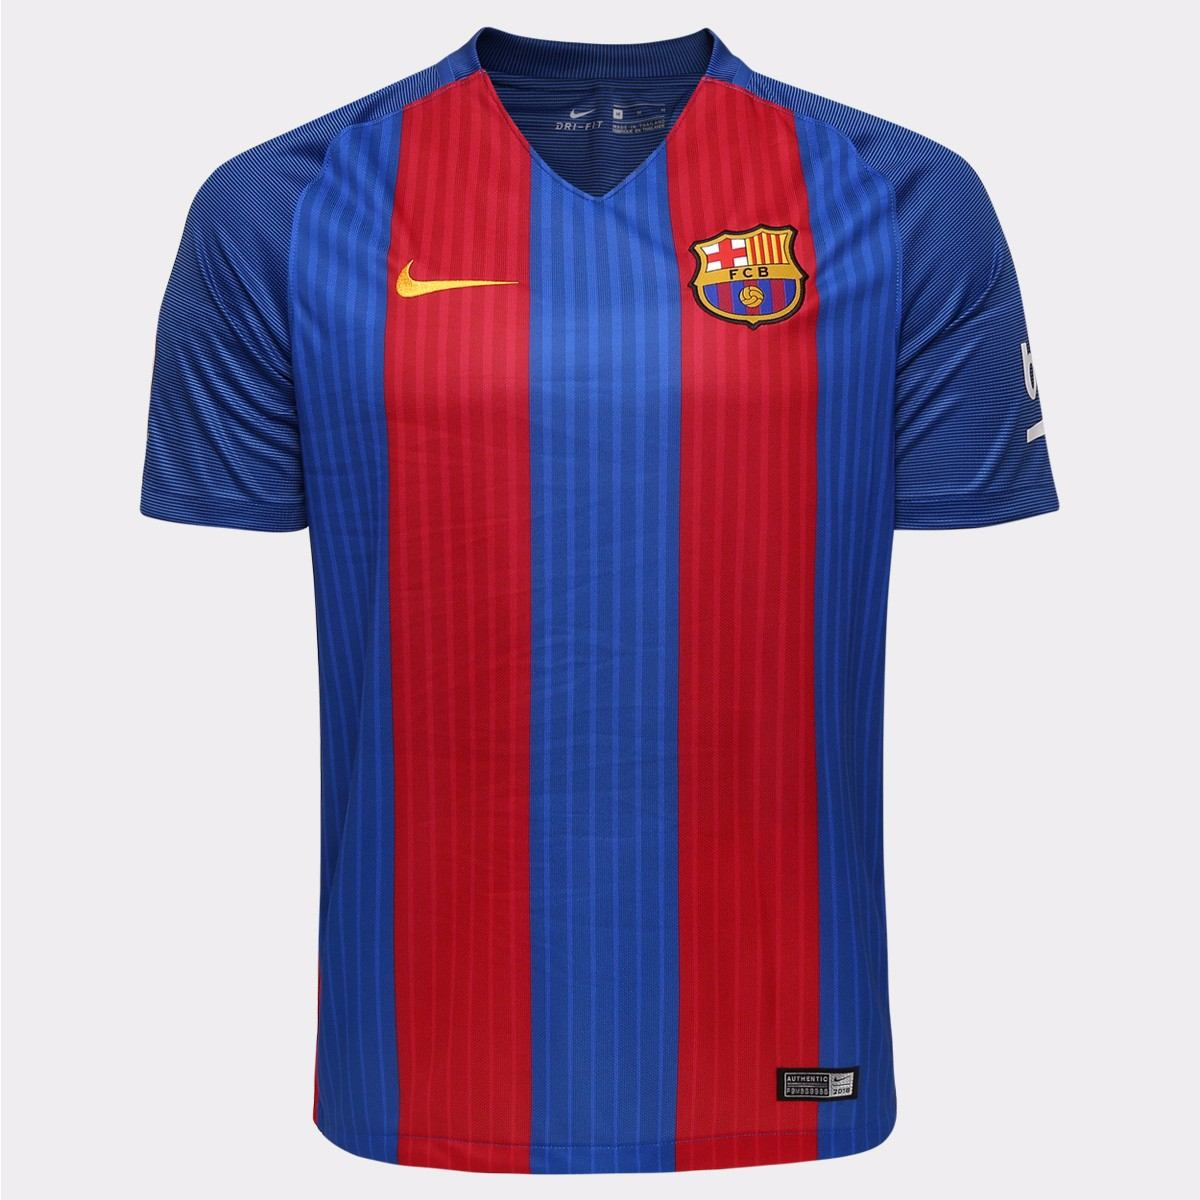 Camisa Nike Barcelona Home 16 17 - Easy Shopping - R  136 e5fbf28bf48a0